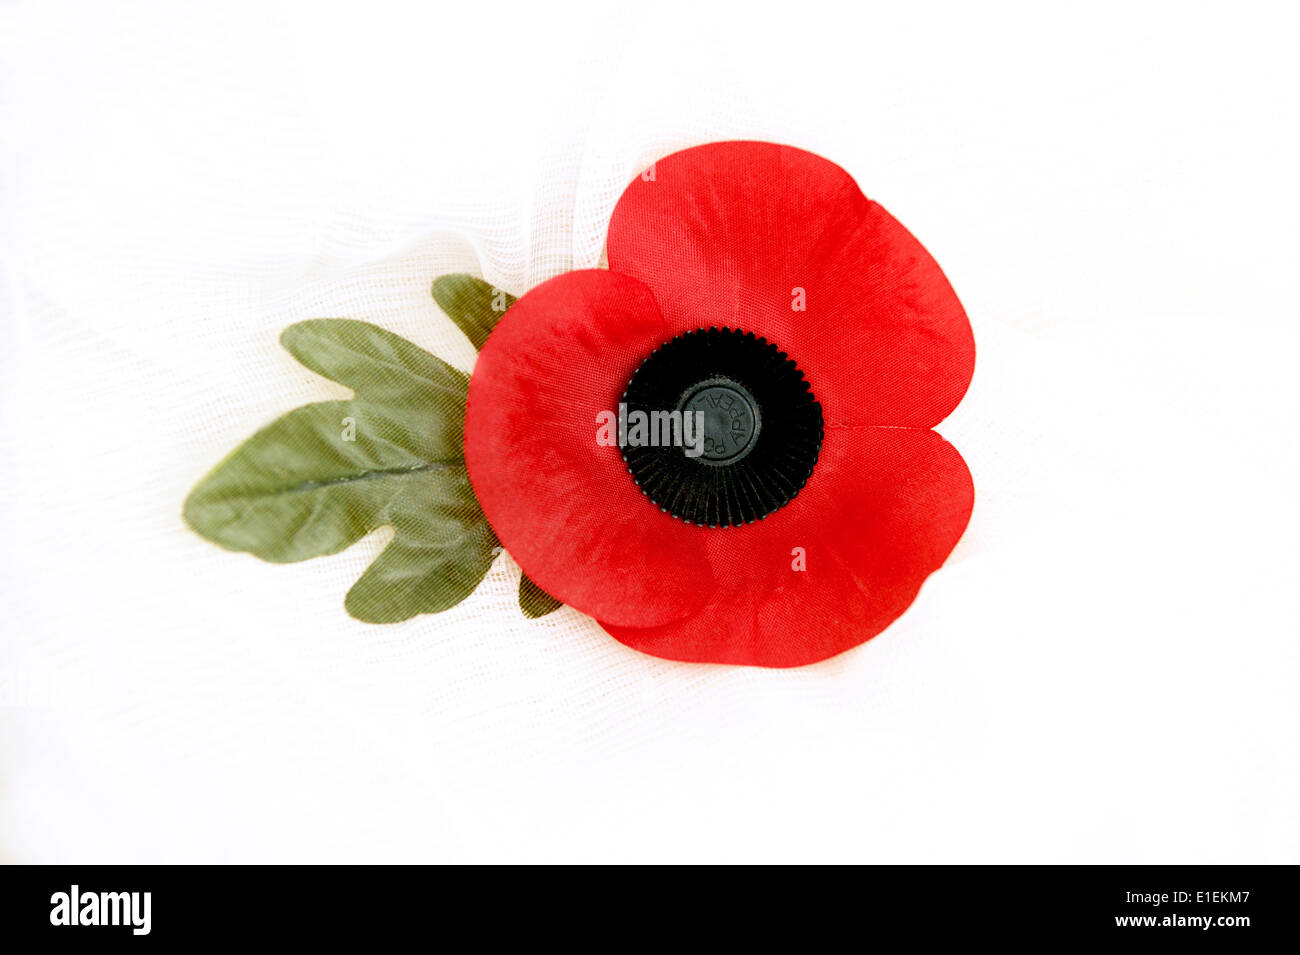 Poppy on a white background the poppy emblem for remembrance & memory of the fallen in wars of the past & ongoing campaigns - Stock Image